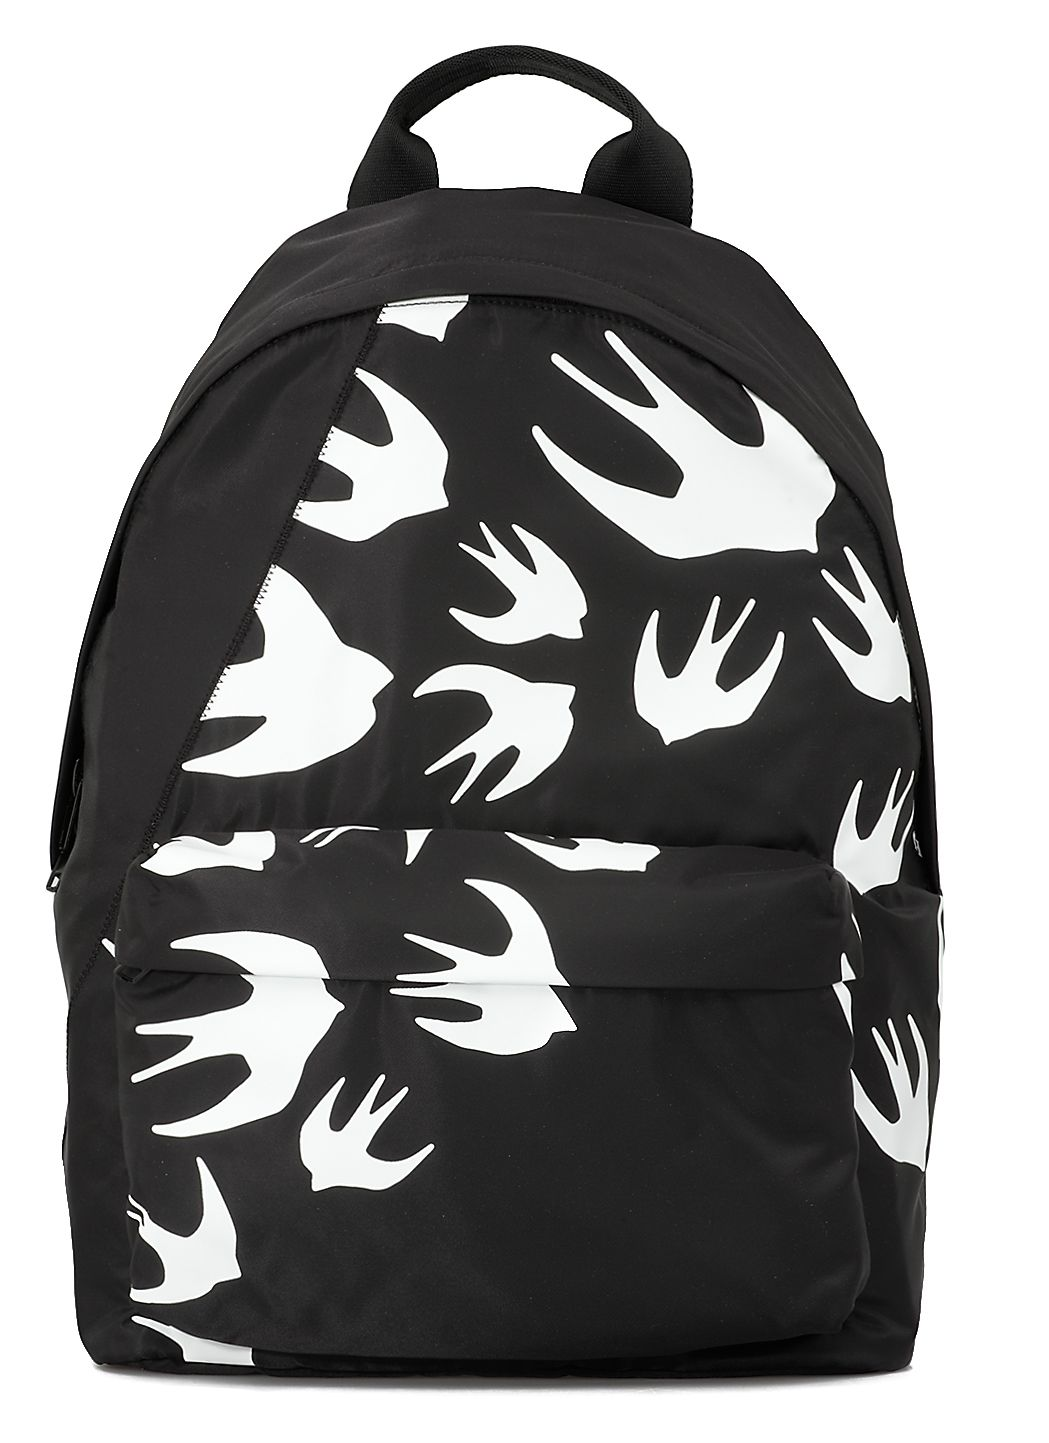 Swallow Swarm backpack